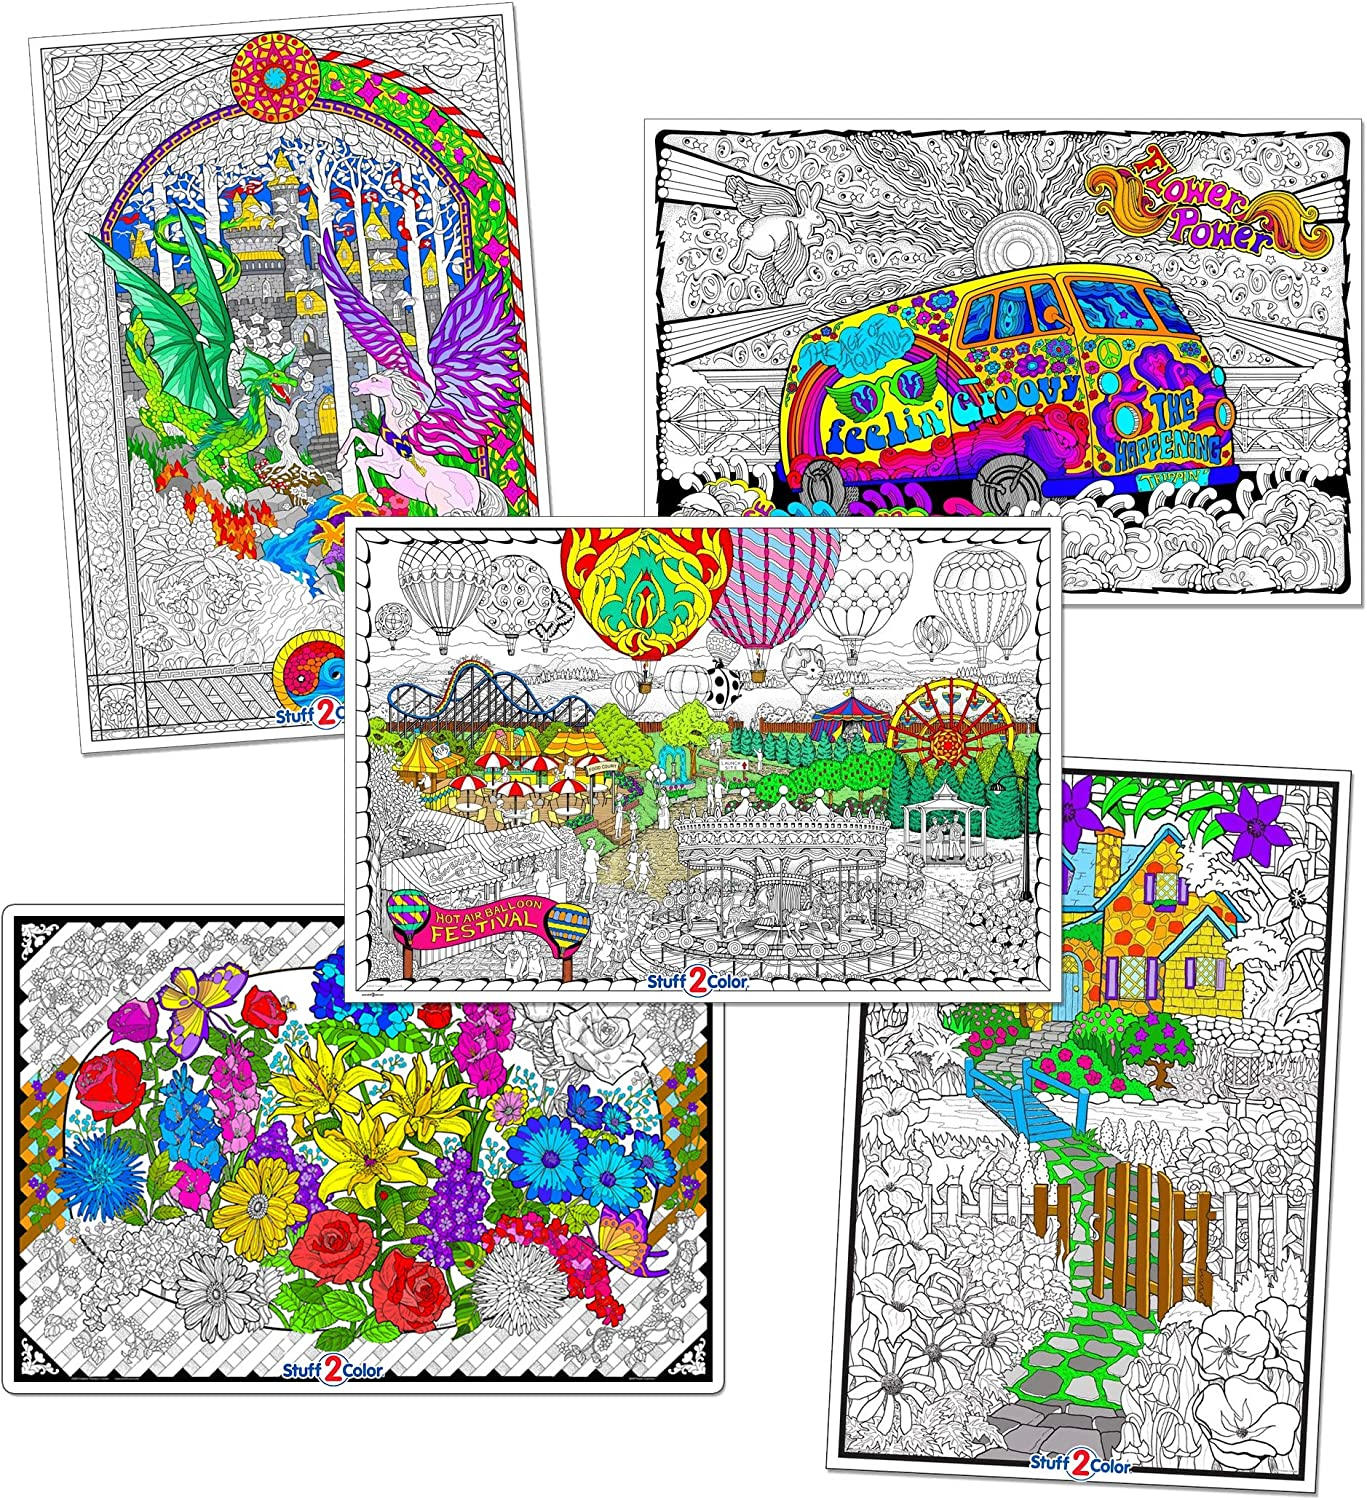 Giant Coloring Poster 5 Pack - Big 22 X 32.5 Inch Line Art Coloring Posters (Original Edition) - Great for Family Time, Adults, Kids, Classrooms, Care Facilities and Group Activities